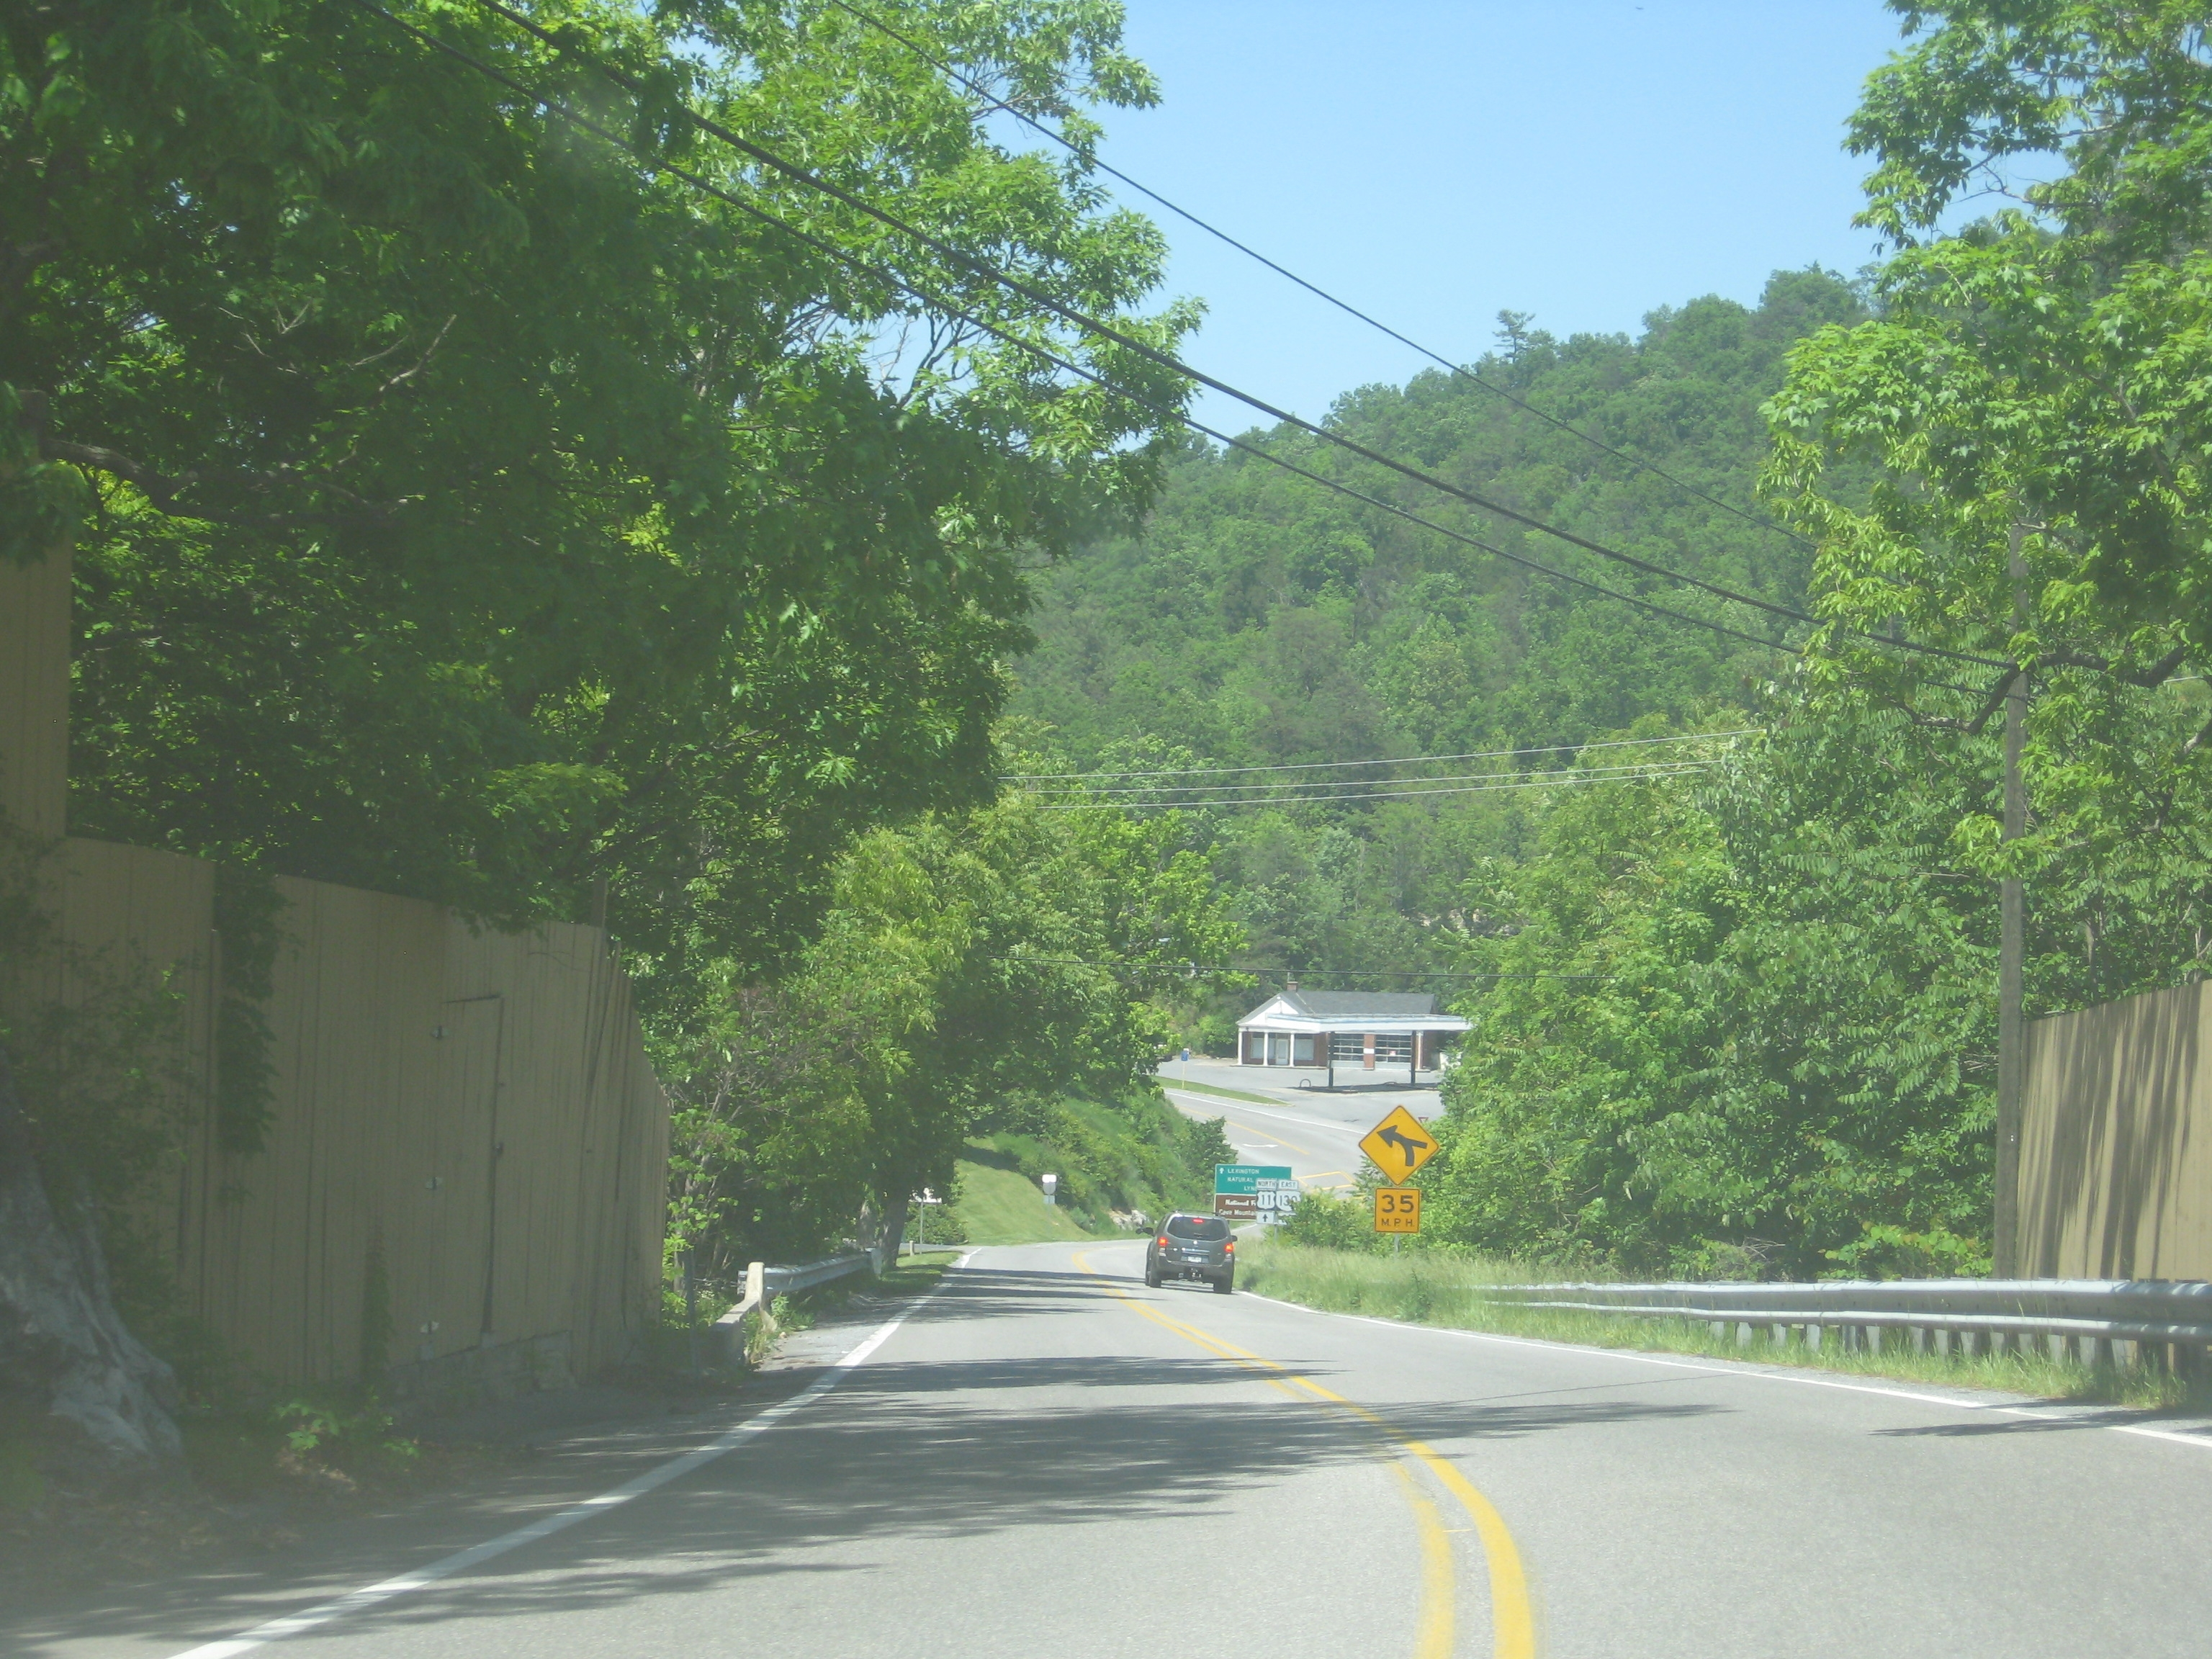 Photo of Route 11 as it goes over Natural Bridge.